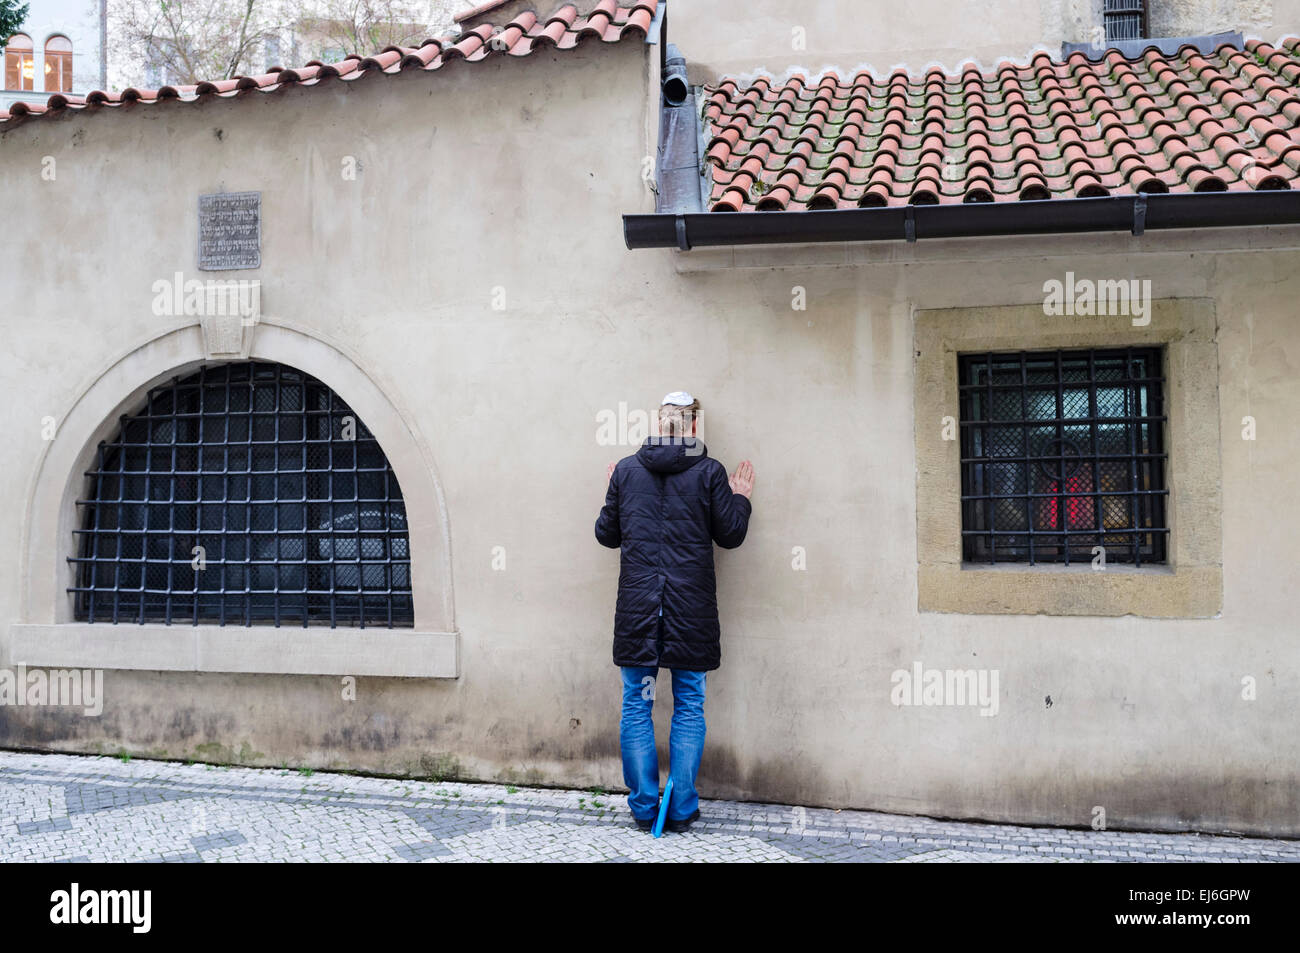 Praying at the Old New Synagogue. Prague, Czech Republic - Stock Image